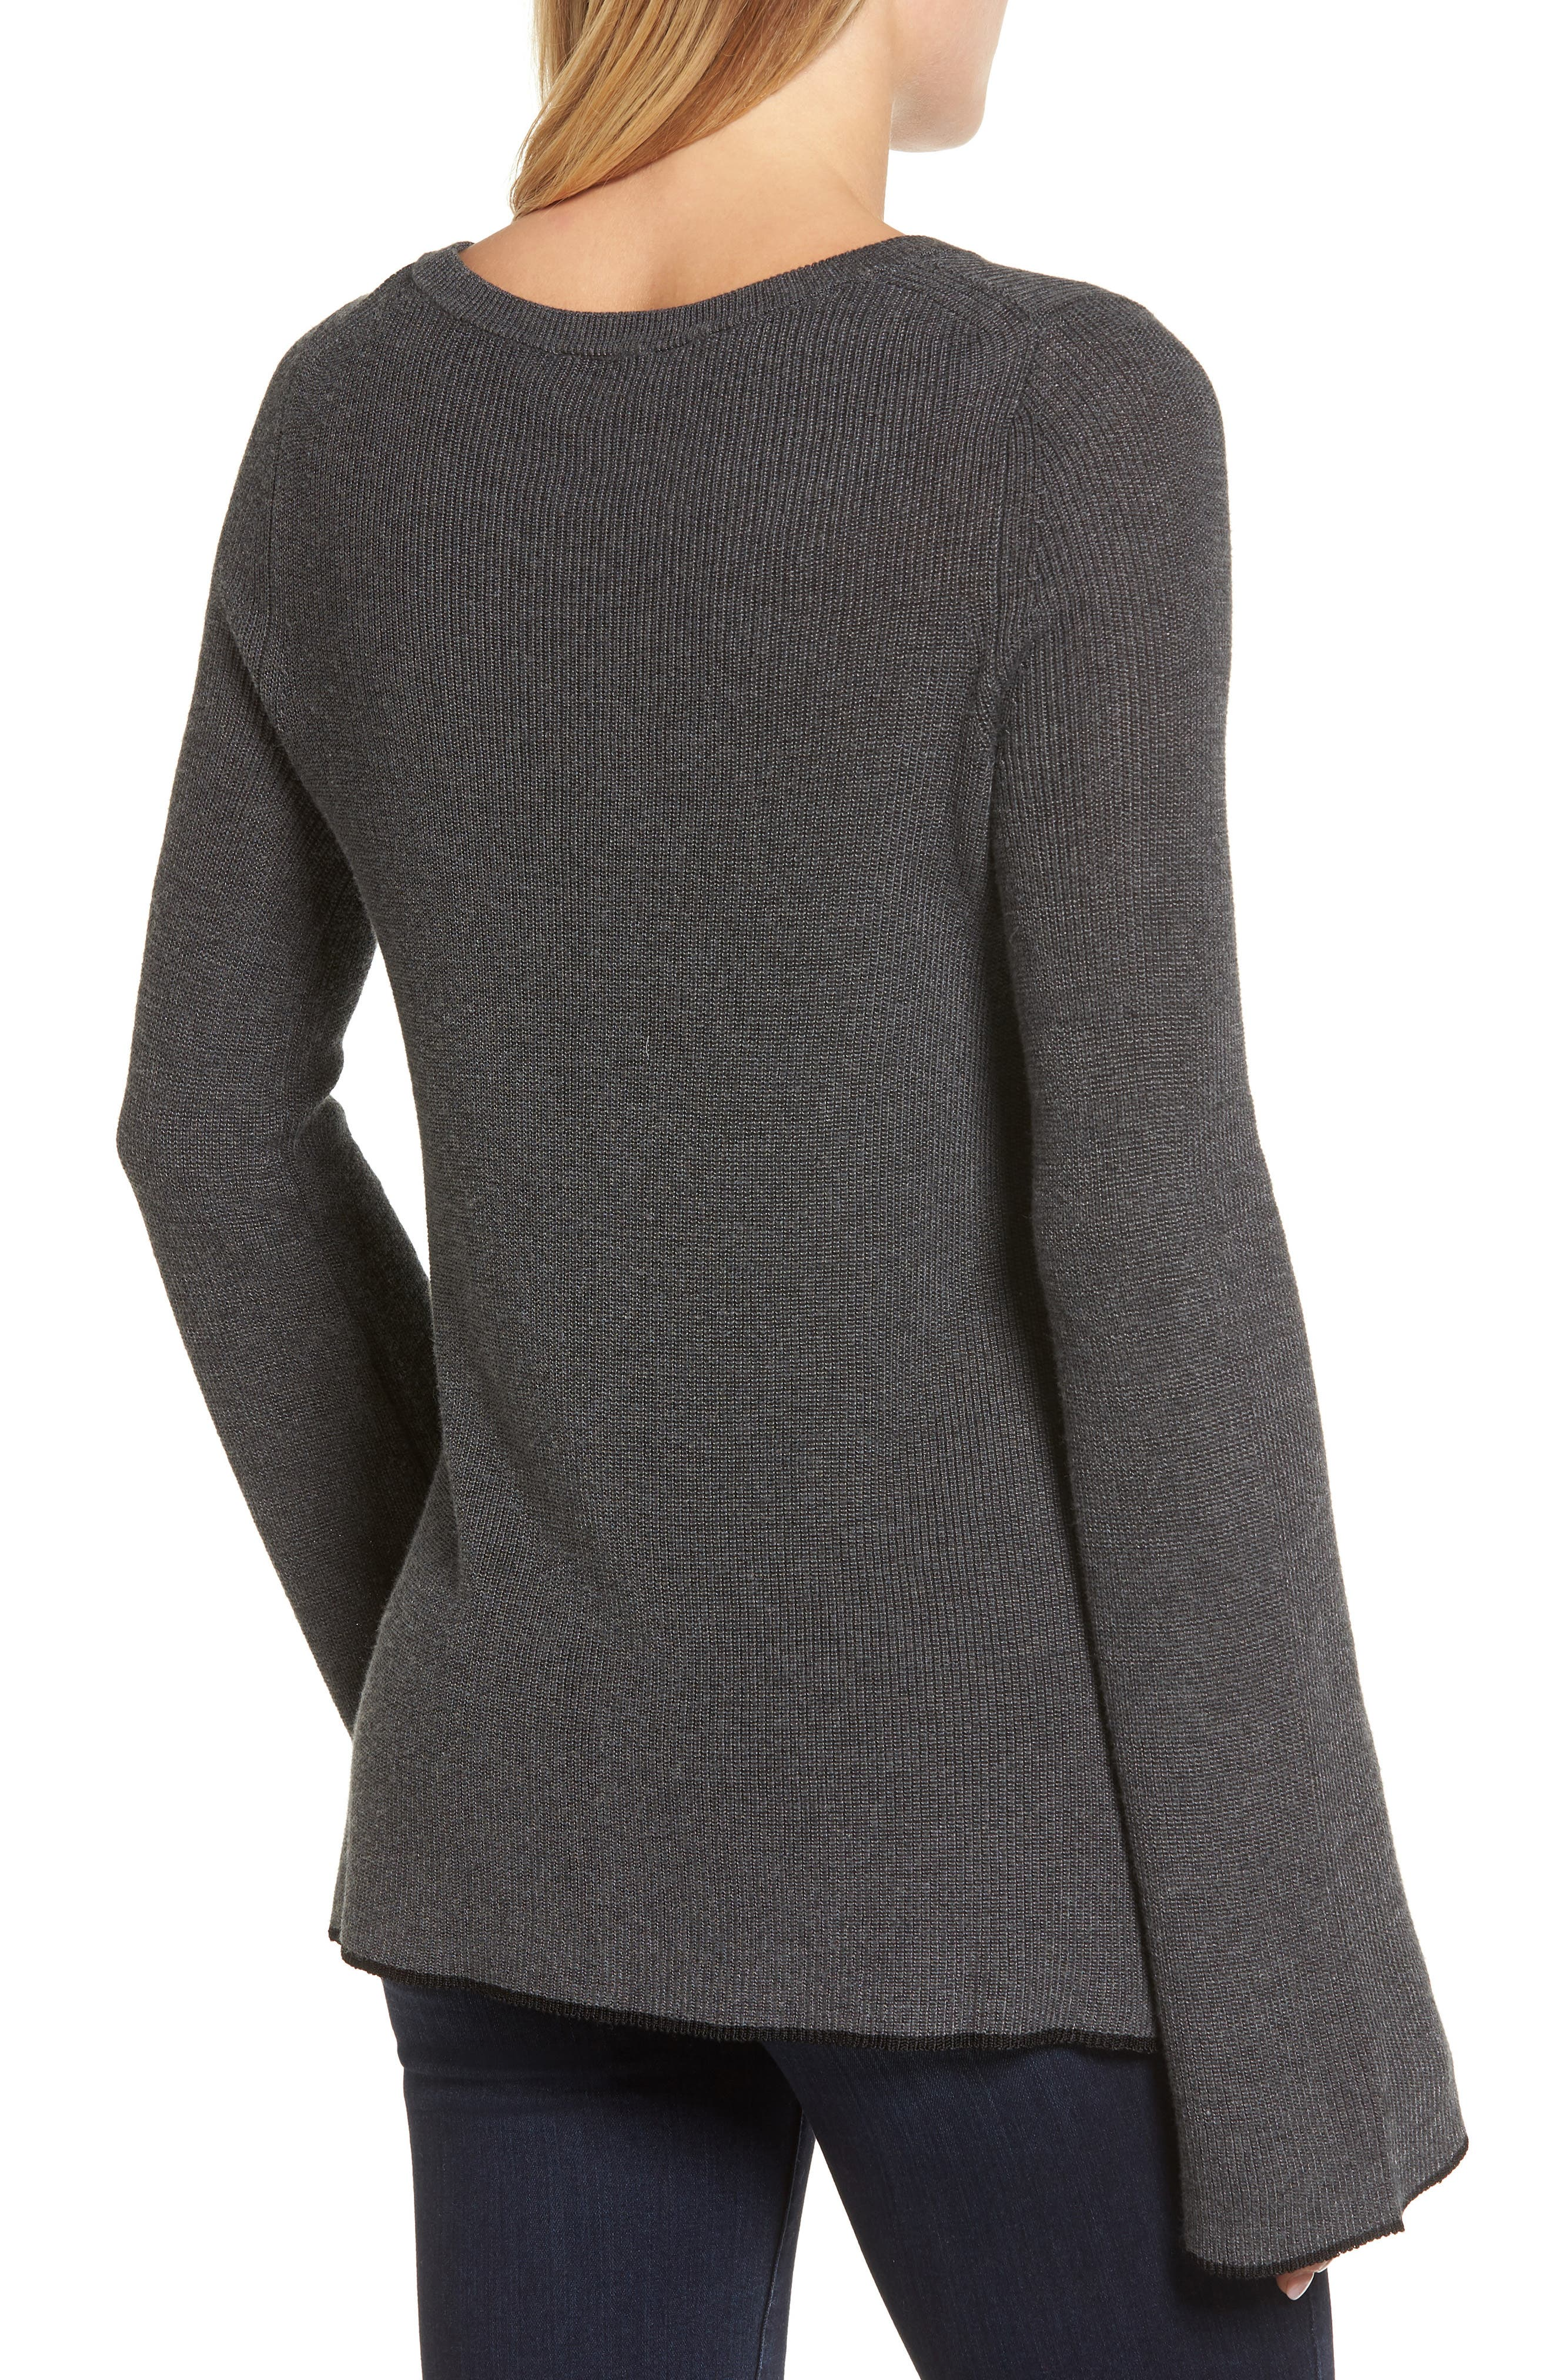 Alternate Image 2  - Vince Camuto Tipped Bell Sleeve Sweater (Regular & Petite)